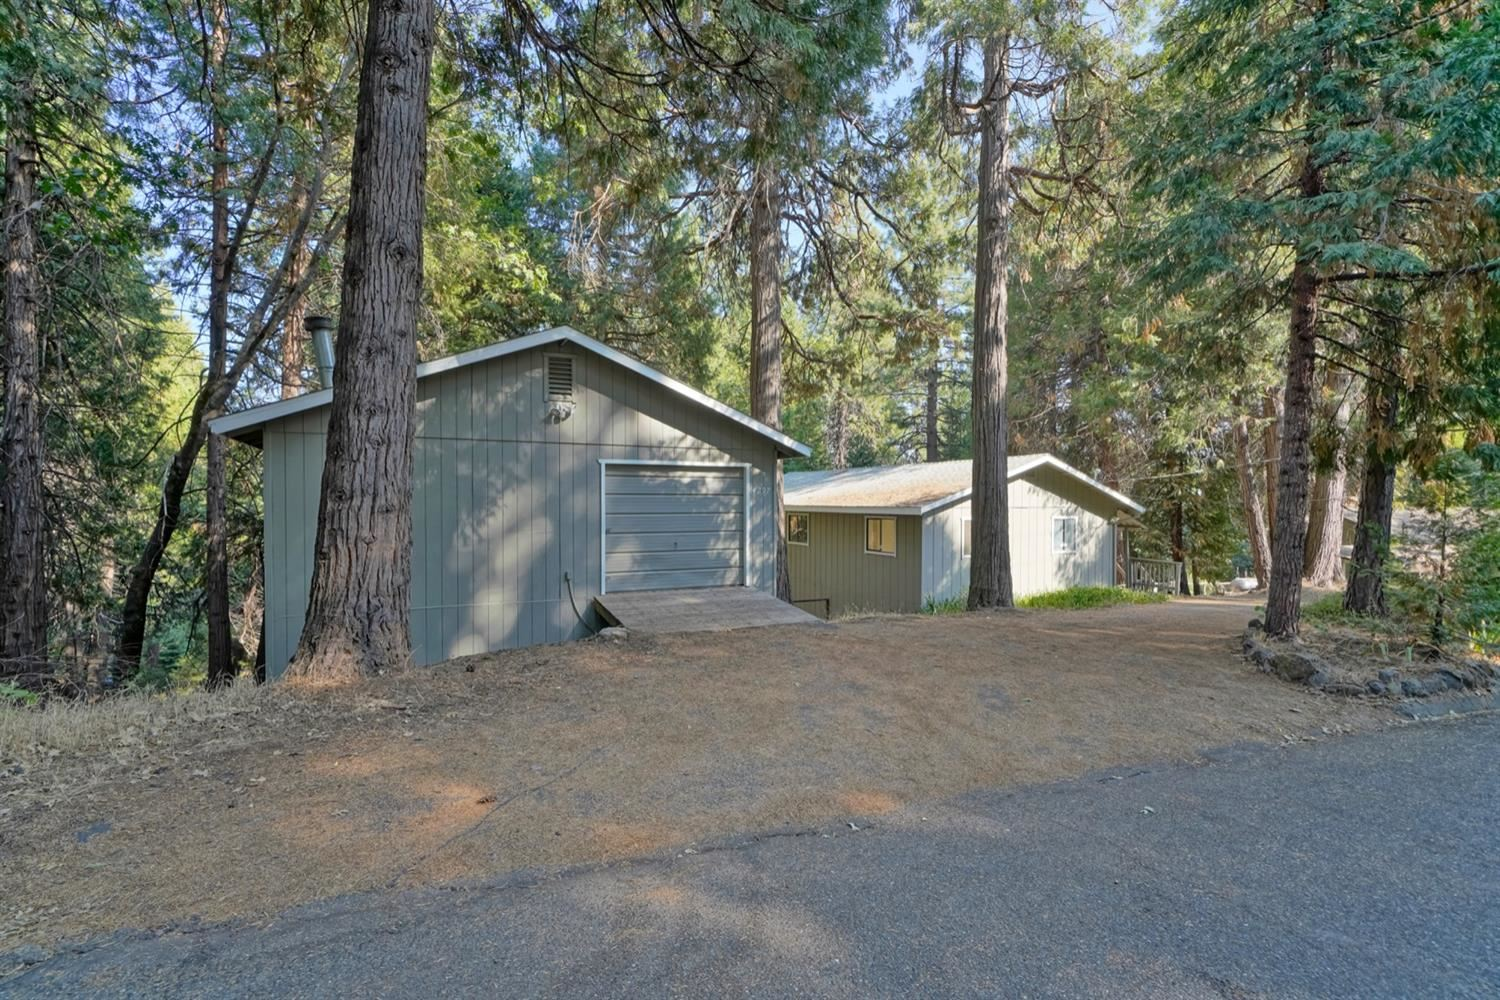 4297 Pine Forest Drive, Pollock Pines, CA 95726 - MLS#: 221099898